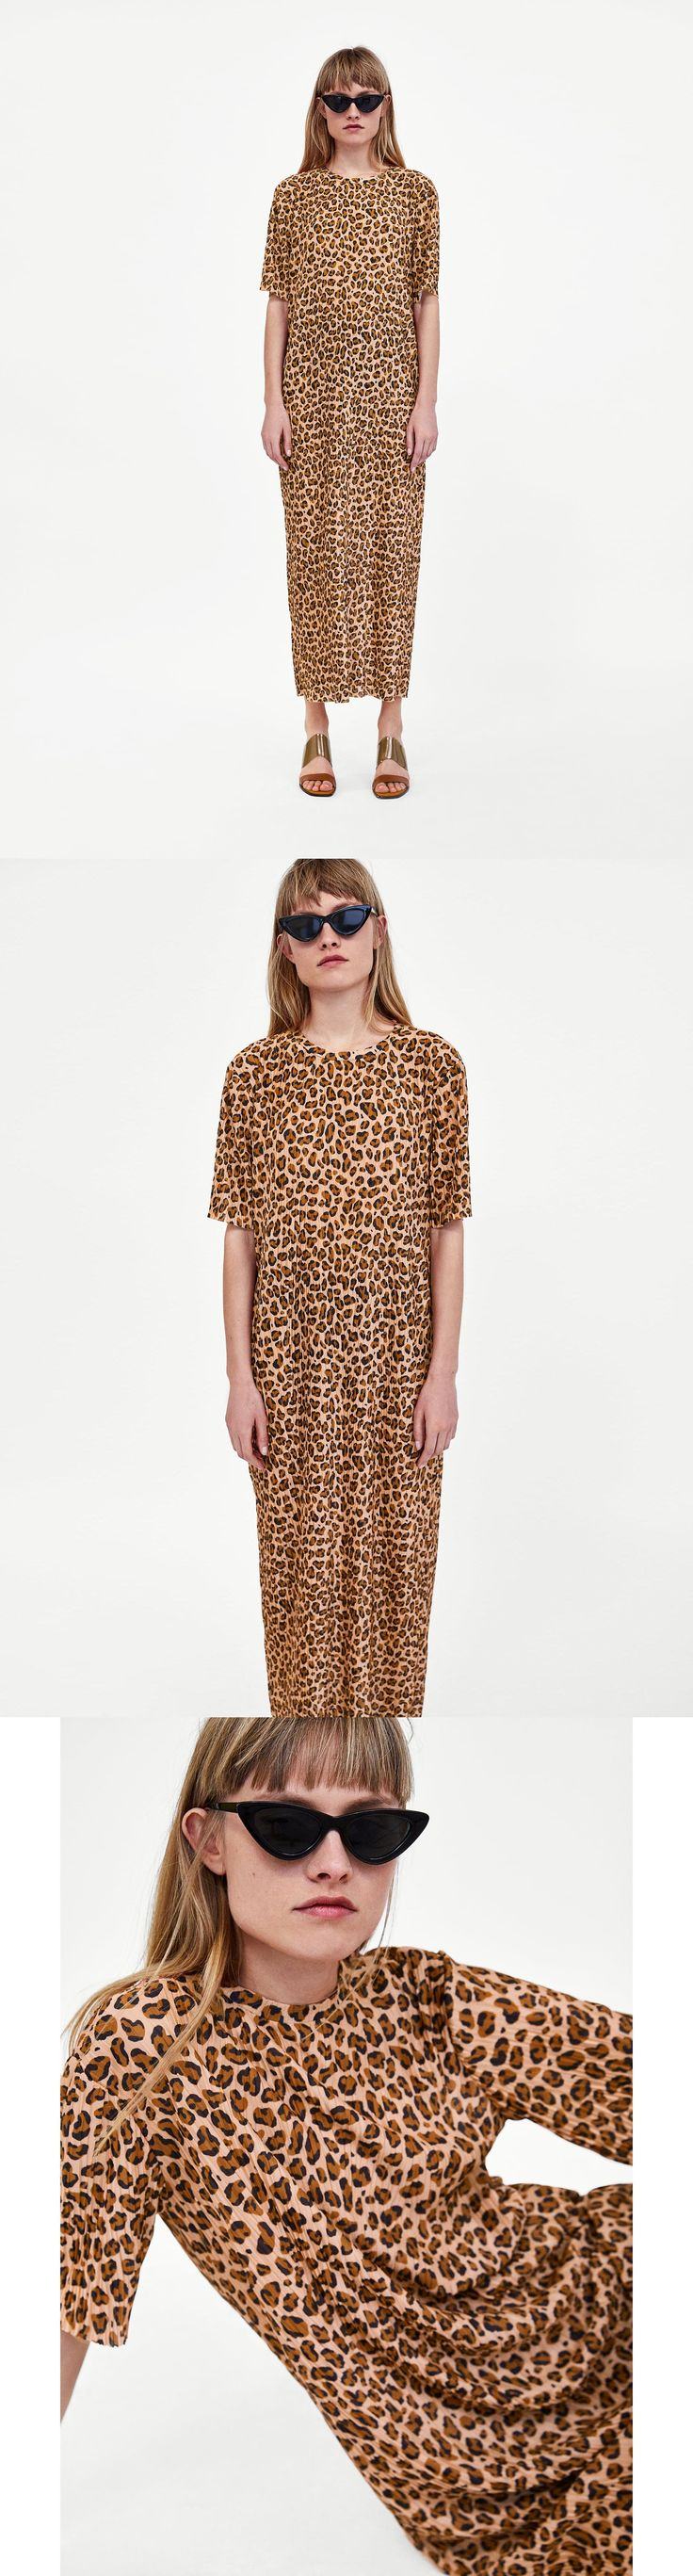 Pleated Leopard Print Dress // 35.90 USD // Zara // Loose-fitting dress with round neckline and short sleeves. HEIGHT OF MODEL: 178 CM / 5′ 10″